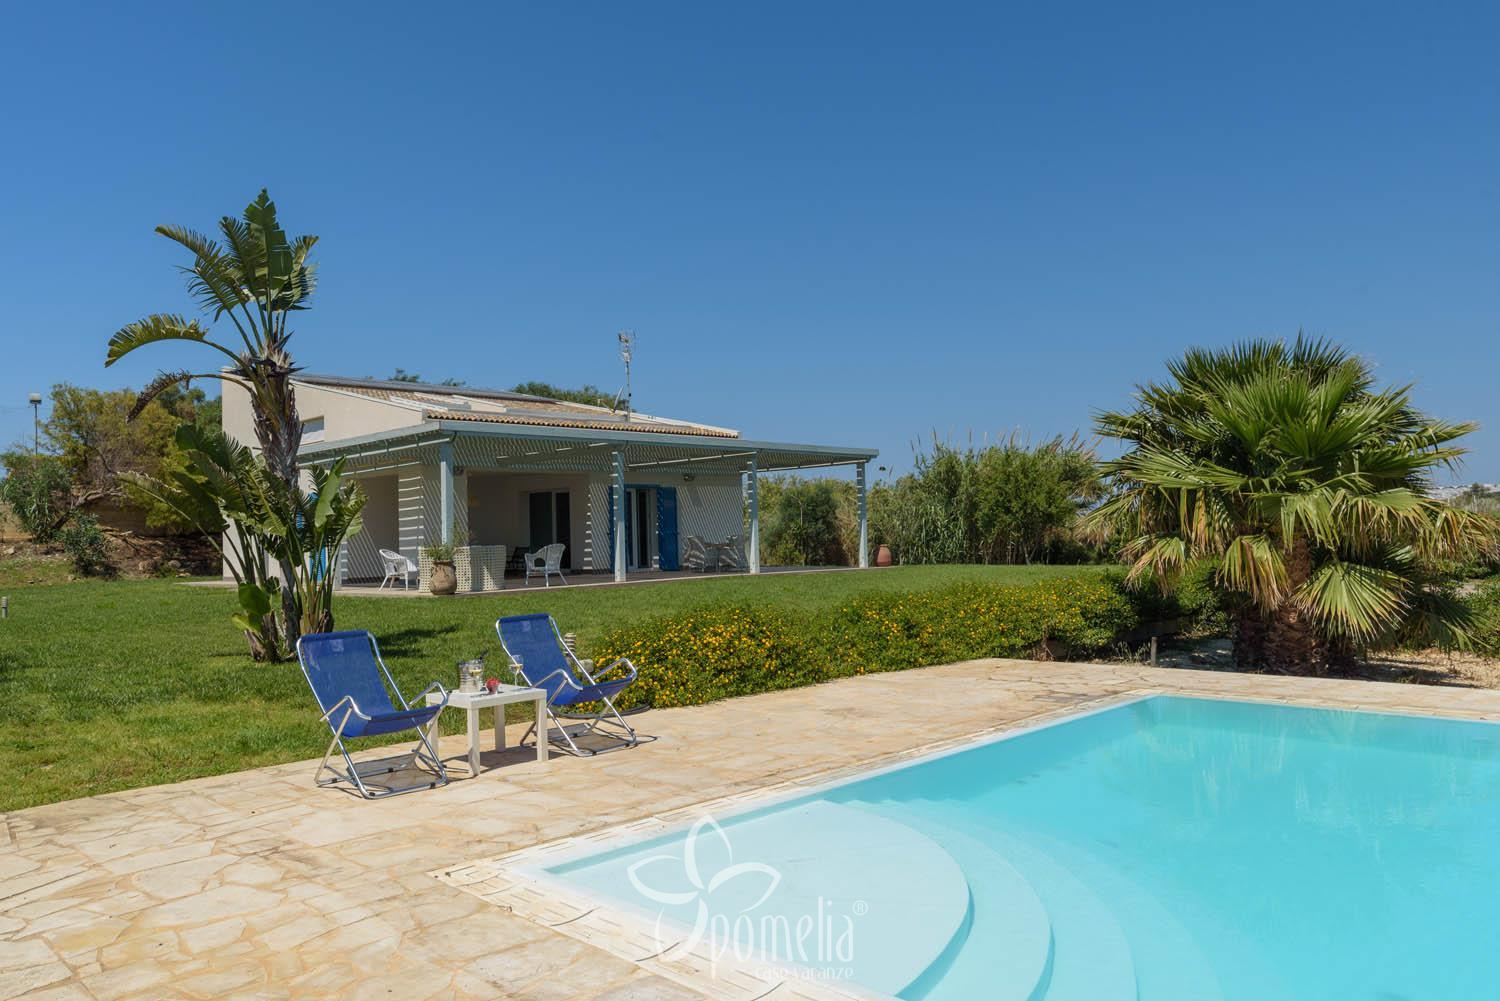 Dafne, villa with pool and garden 300 meters from the beach of Caucana - Swimming Pool